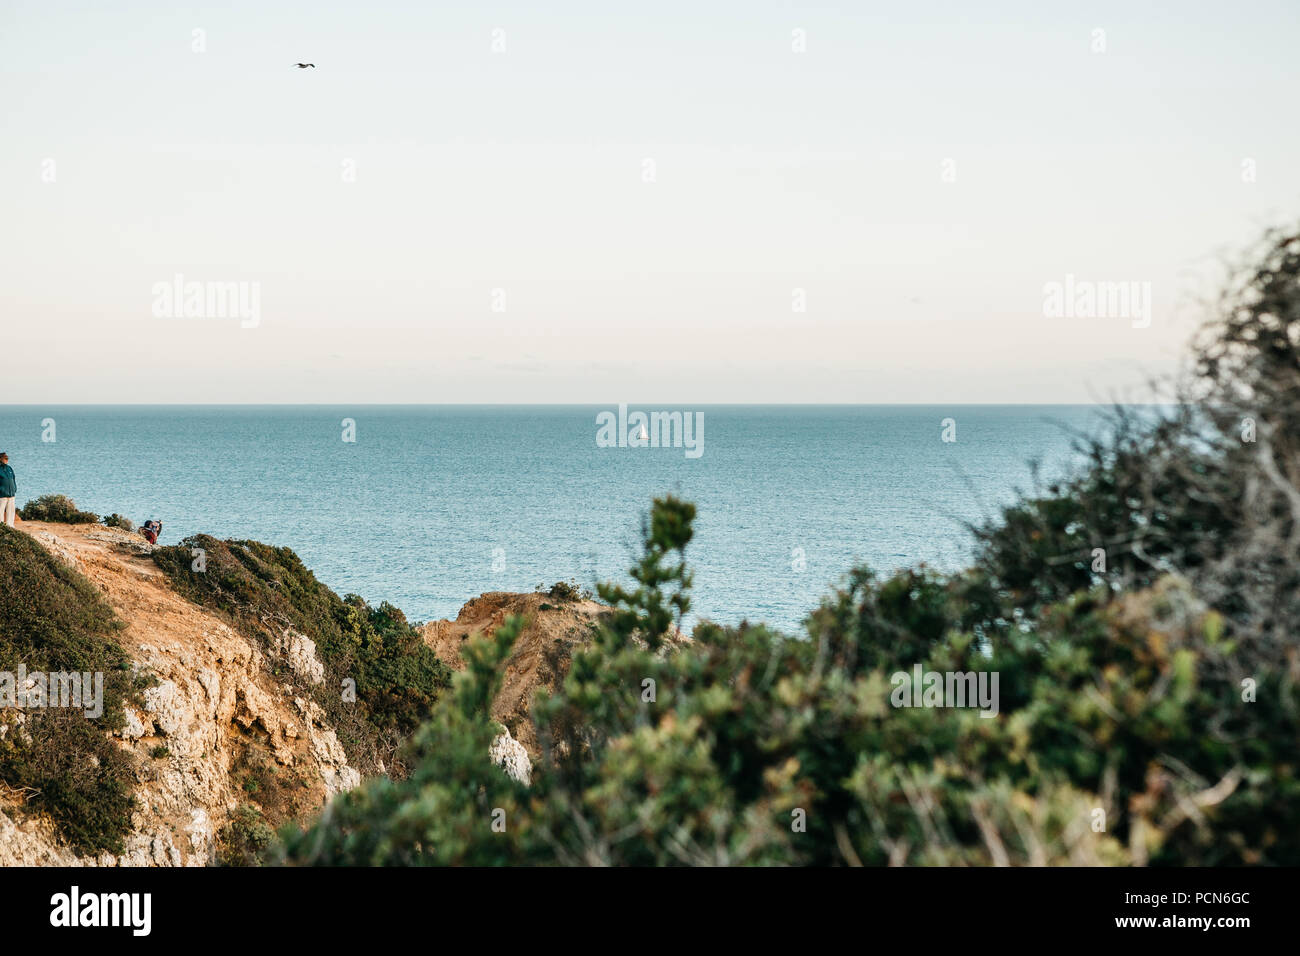 View of the Atlantic Ocean off the coast of Portugal and the sailboat floating in the distance. It is minimalistic. - Stock Image